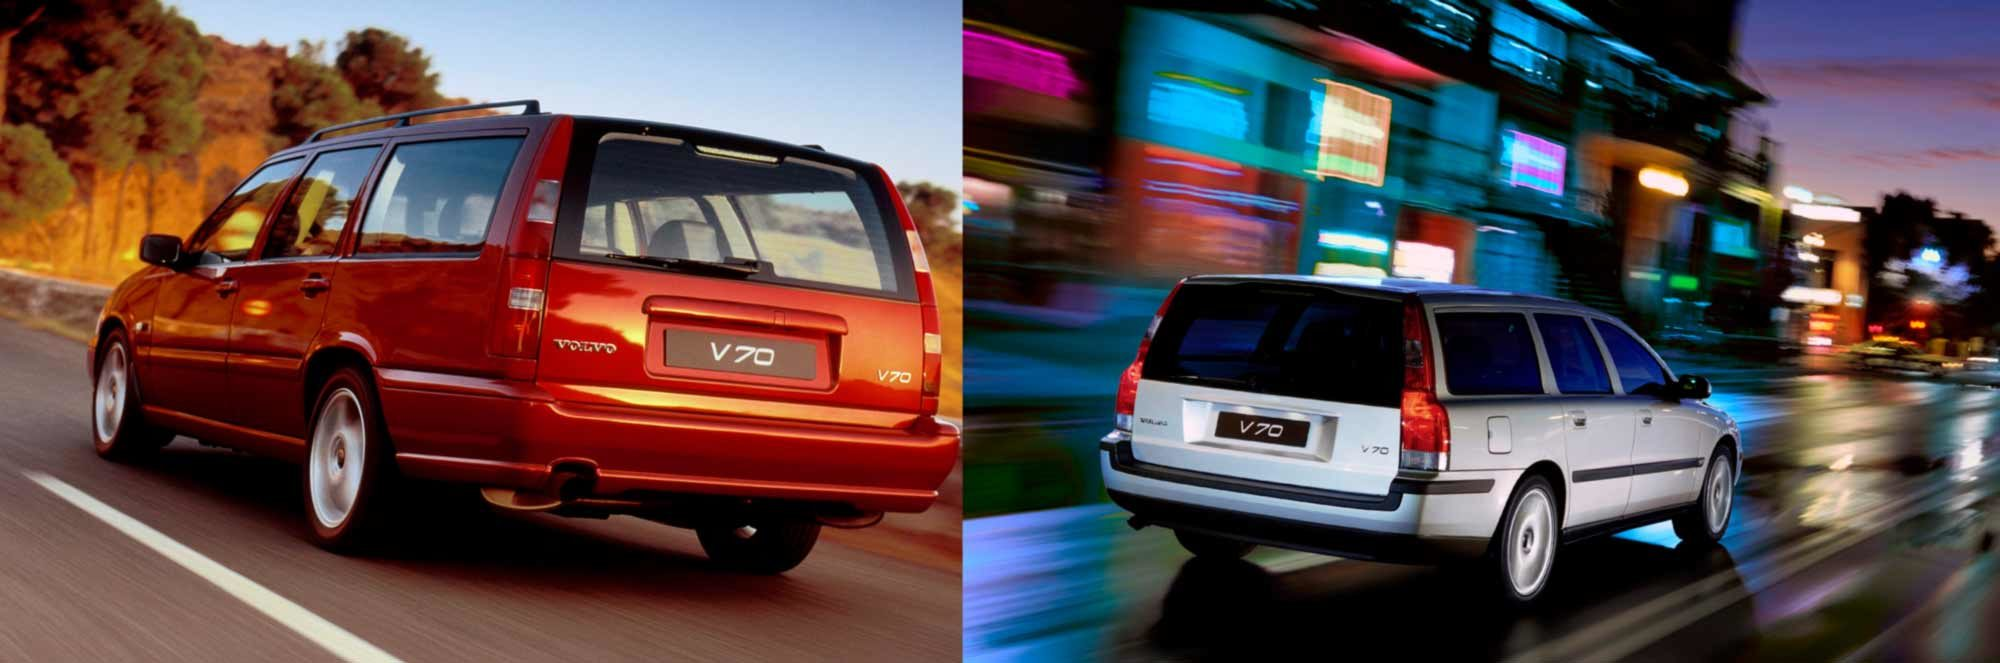 Volvo V70 Years Body Styles Features Options And